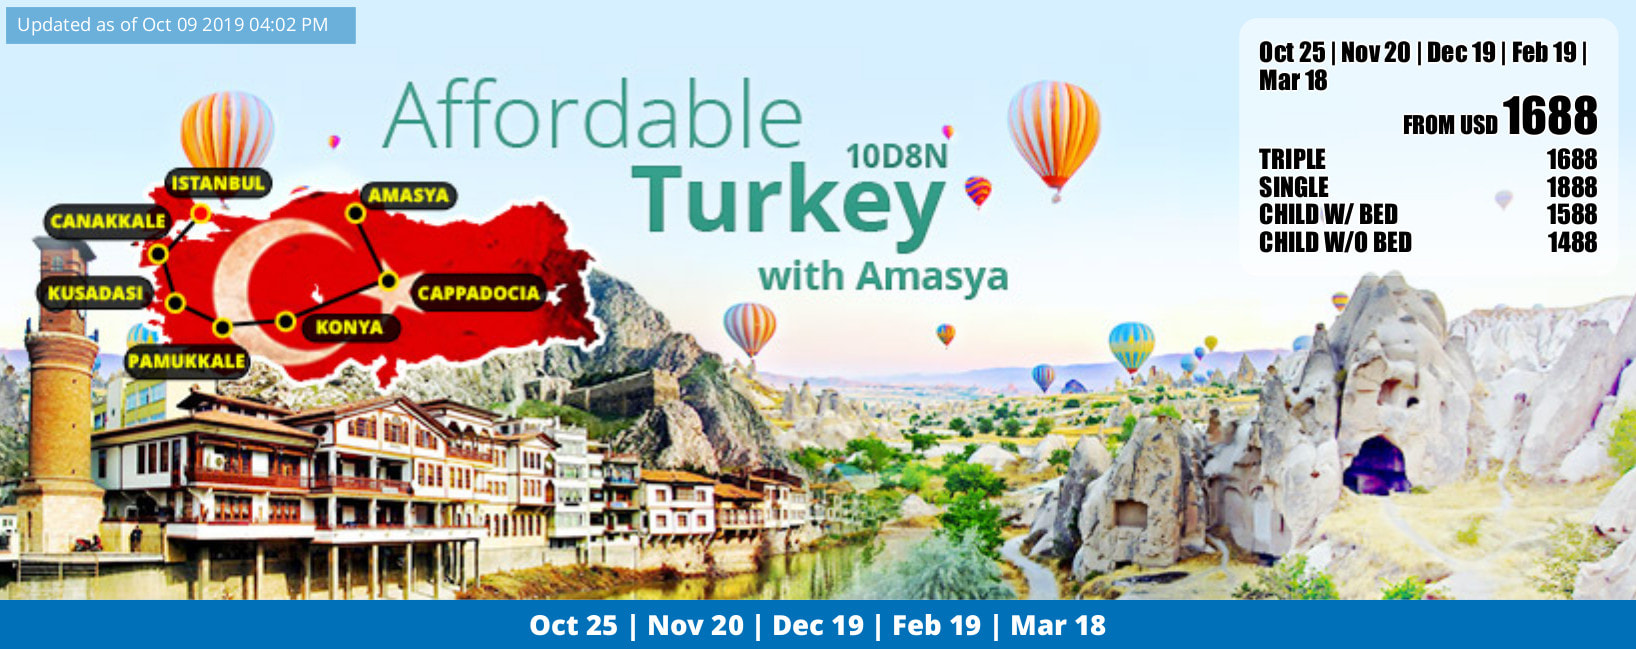 affordable turkey 2019-2020 flyer. click for detailed itinerary in jpg file